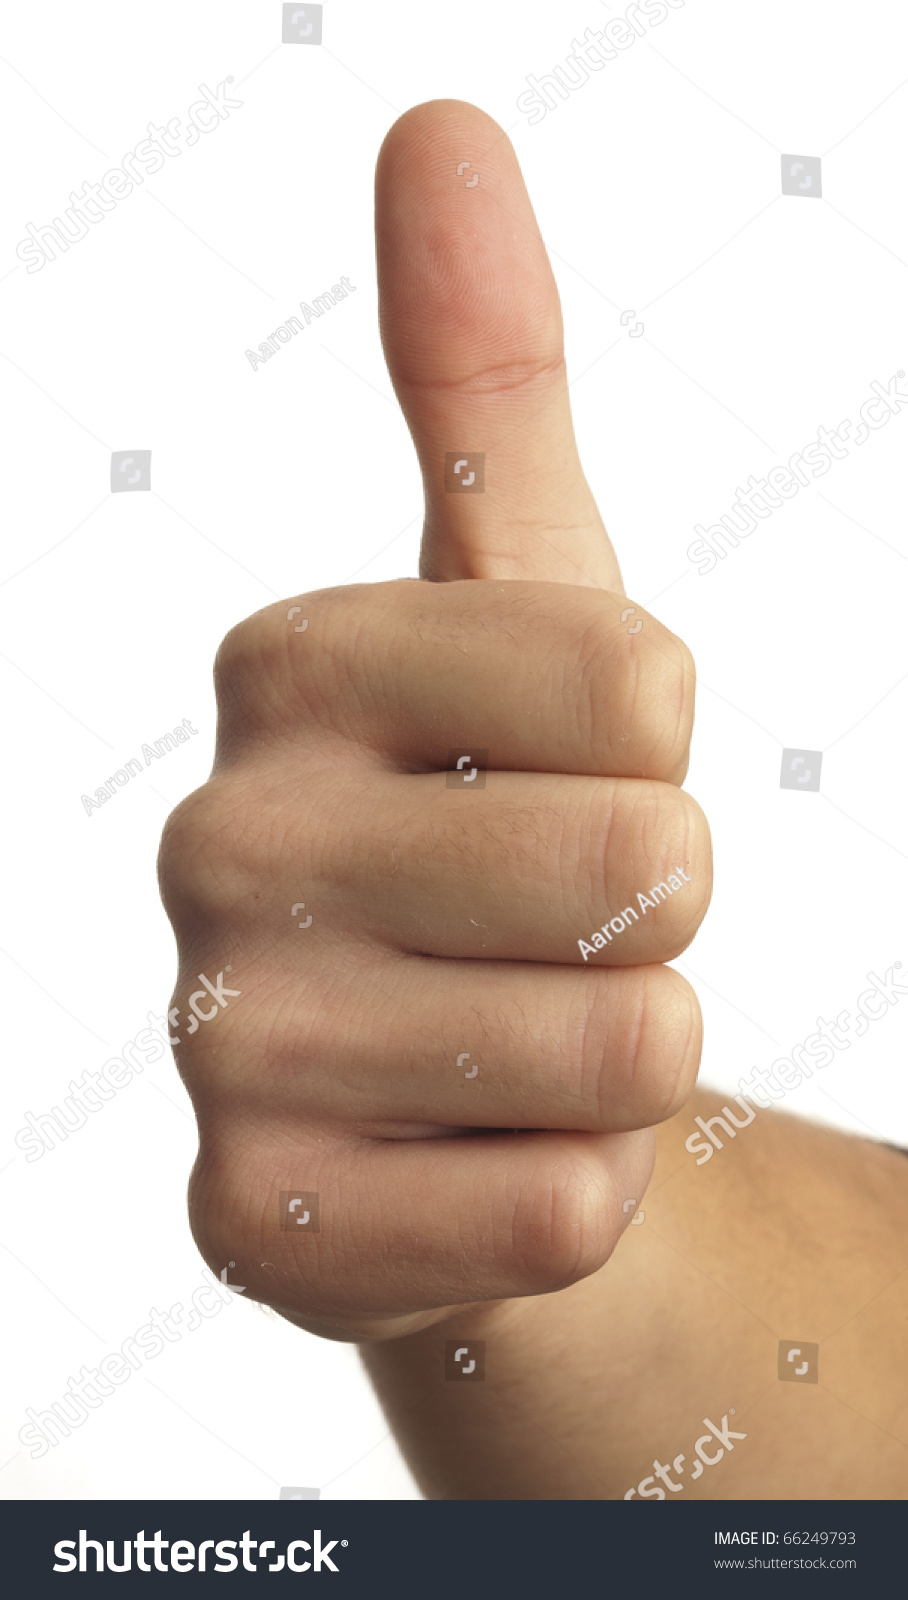 Hand symbol that means good on stock photo 66249793 shutterstock hand symbol that means good on white background buycottarizona Choice Image